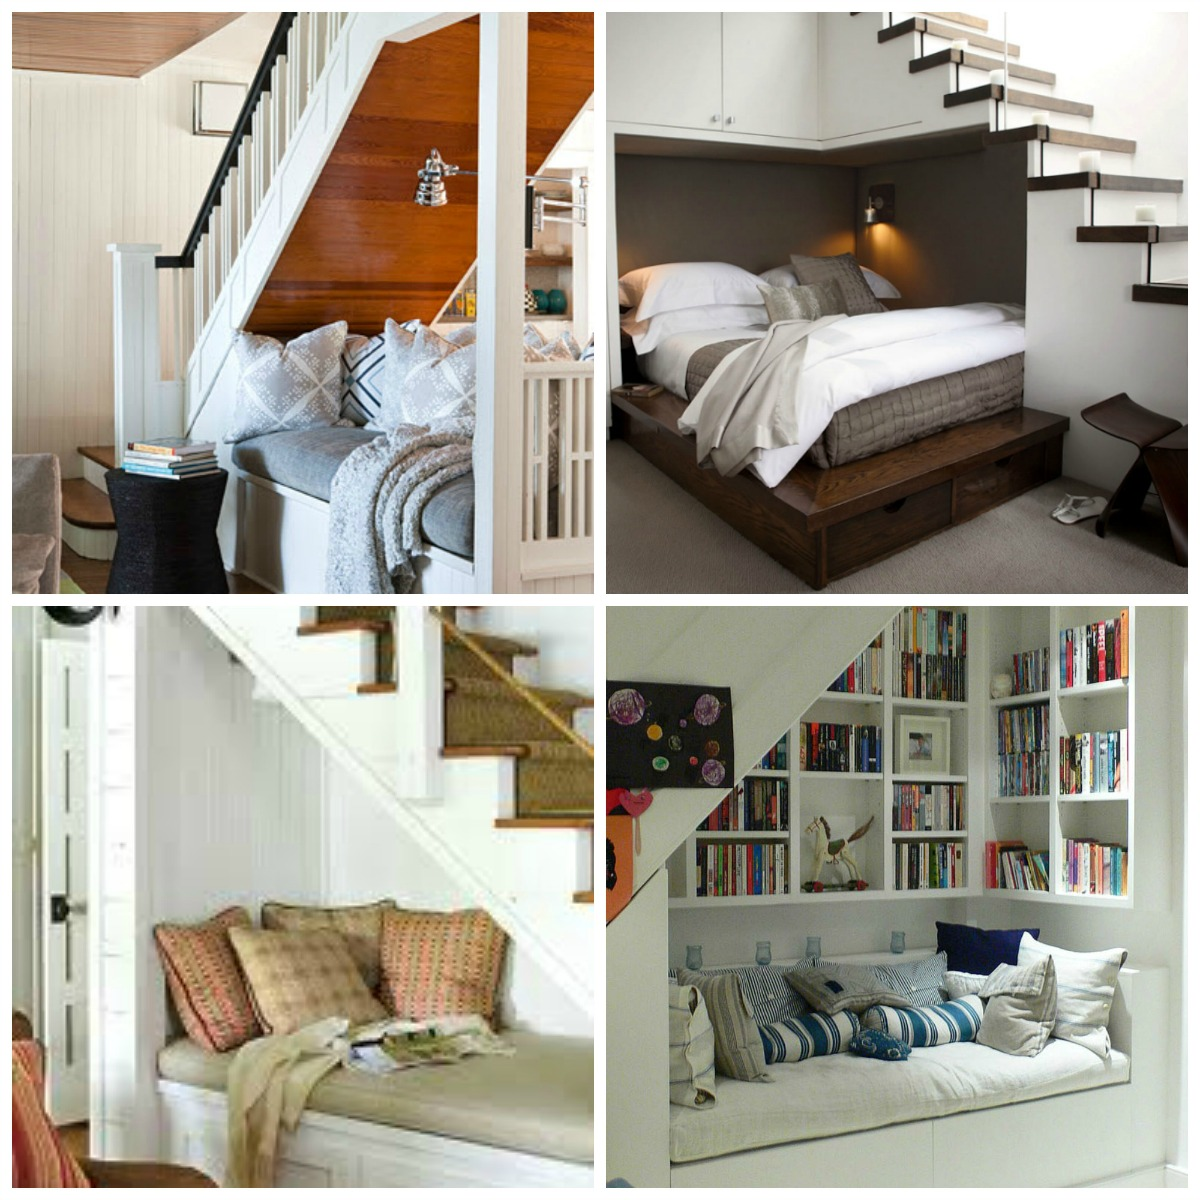 30 Small House Hacks That Will Instantly Maximize And Enlarge Your Space-homesthetics